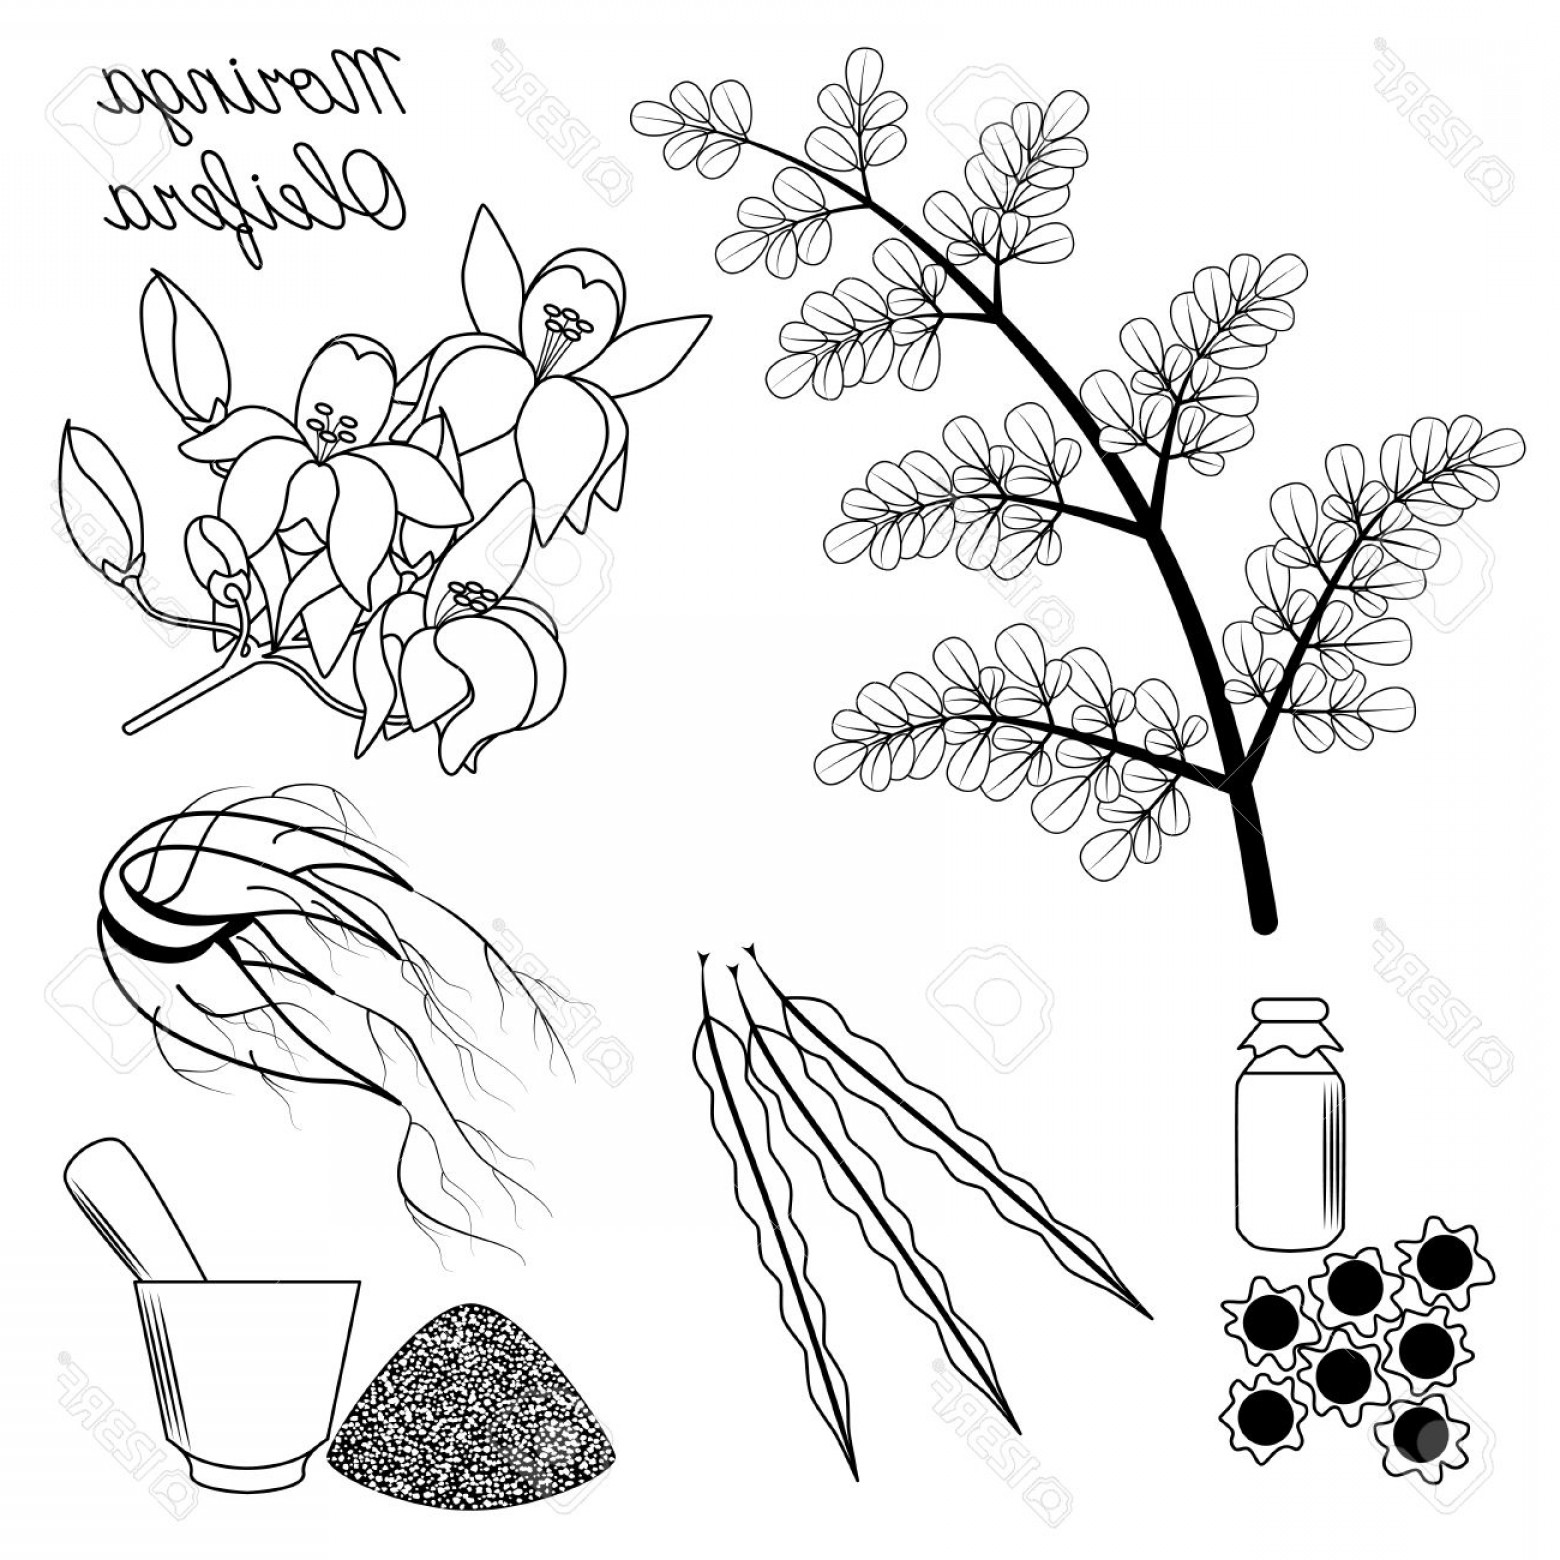 Seed Flower Vectors: Photostock Vector Superfood Moringa Set Of Leaves Flowers Seeds And Root On Isolated Background